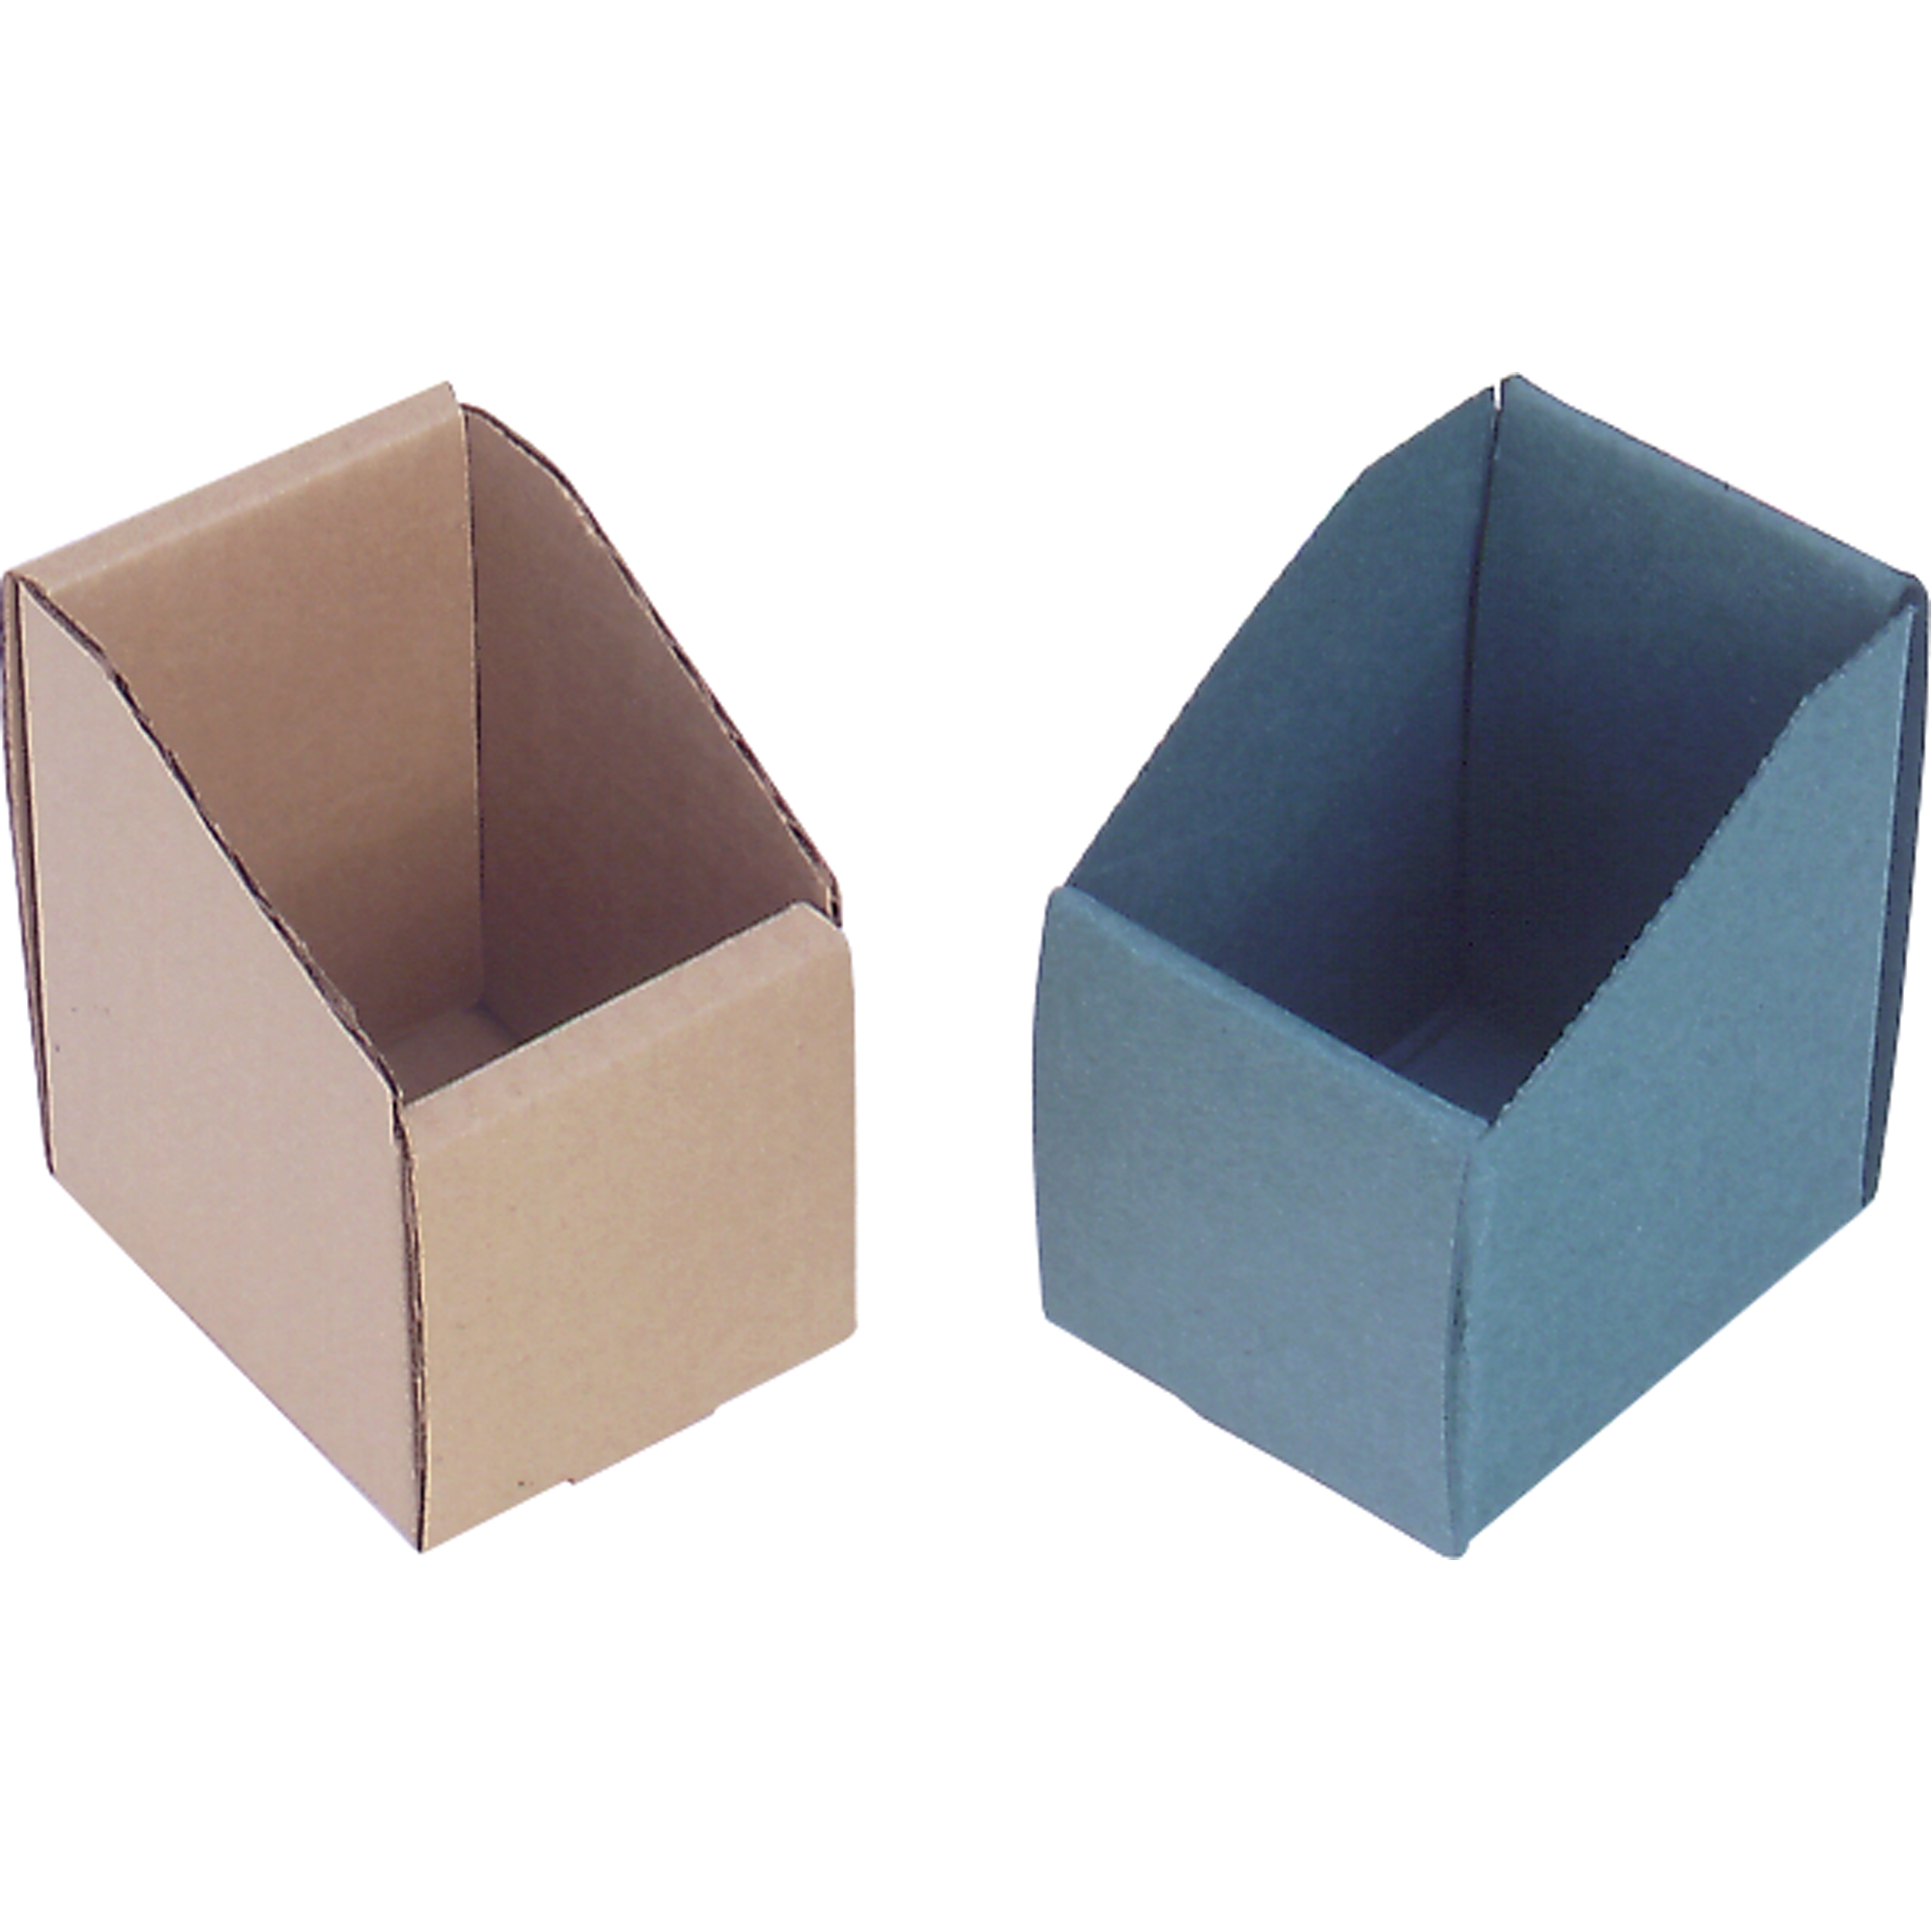 """Cardinal Boxes Corrugated 3 5/8"""" Deep Removable Divider W: 2 3/4 x H: 4 1/8, Beige."""